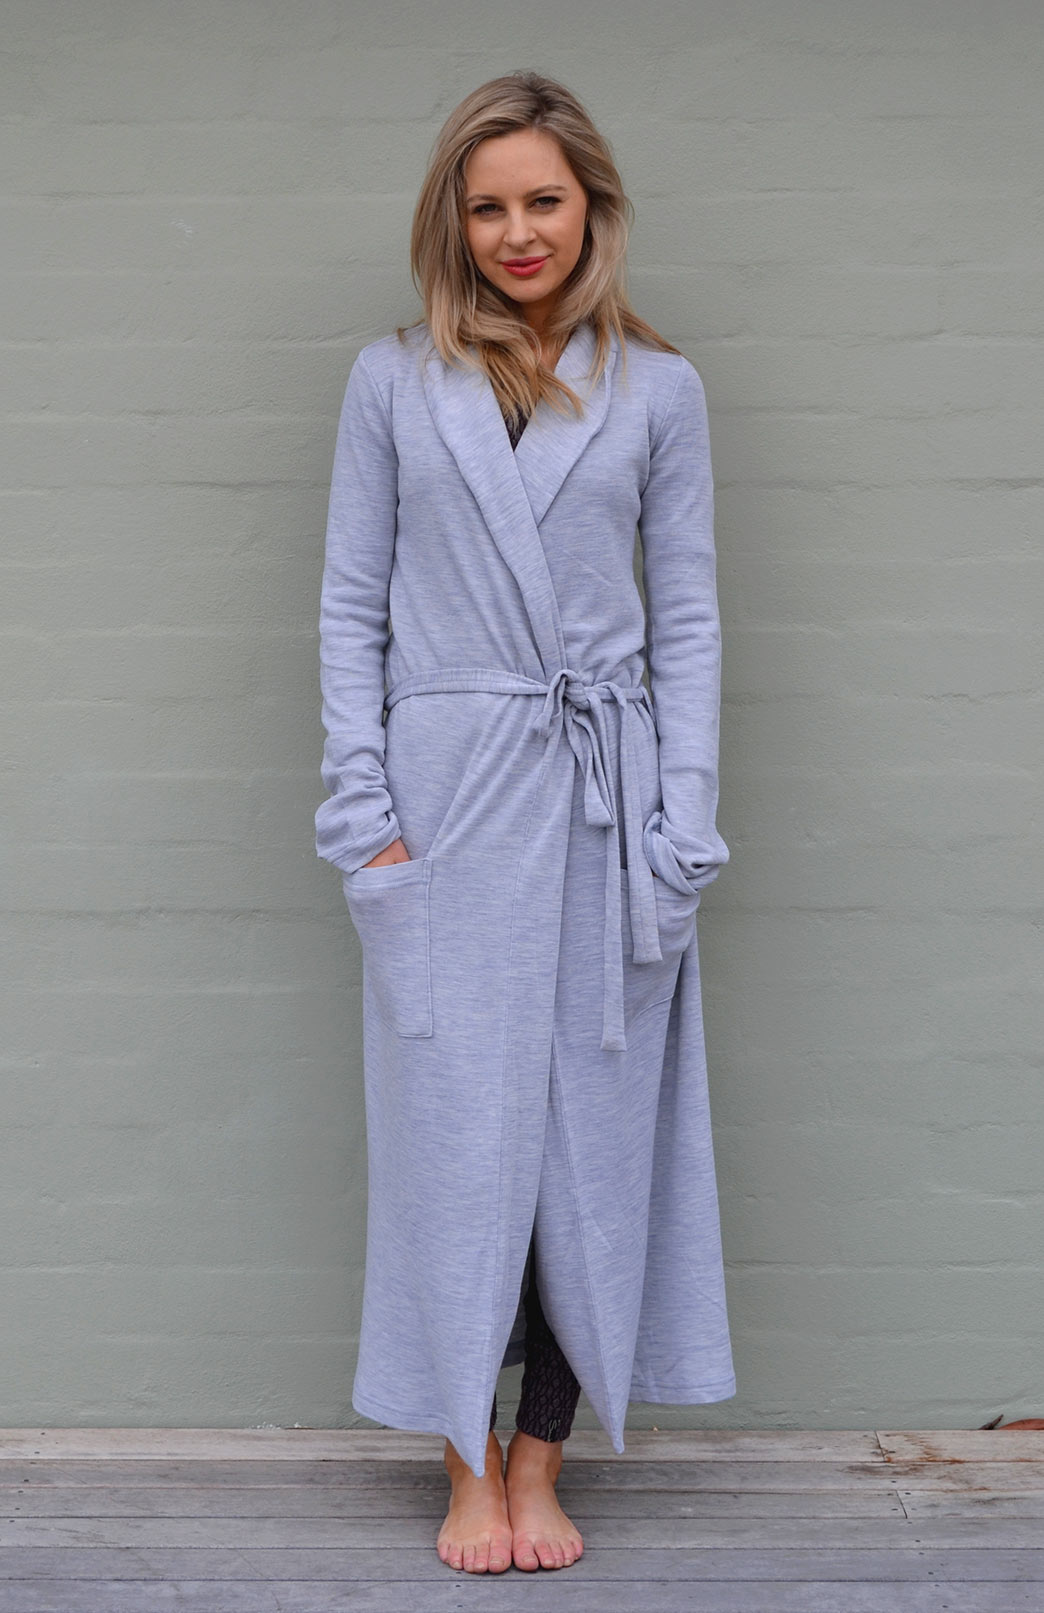 Dressing Gown - Heavyweight - Women's Soft Grey Superfine Merino Wool Dressing Gown with Tie and Side Pockets - Smitten Merino Tasmania Australia